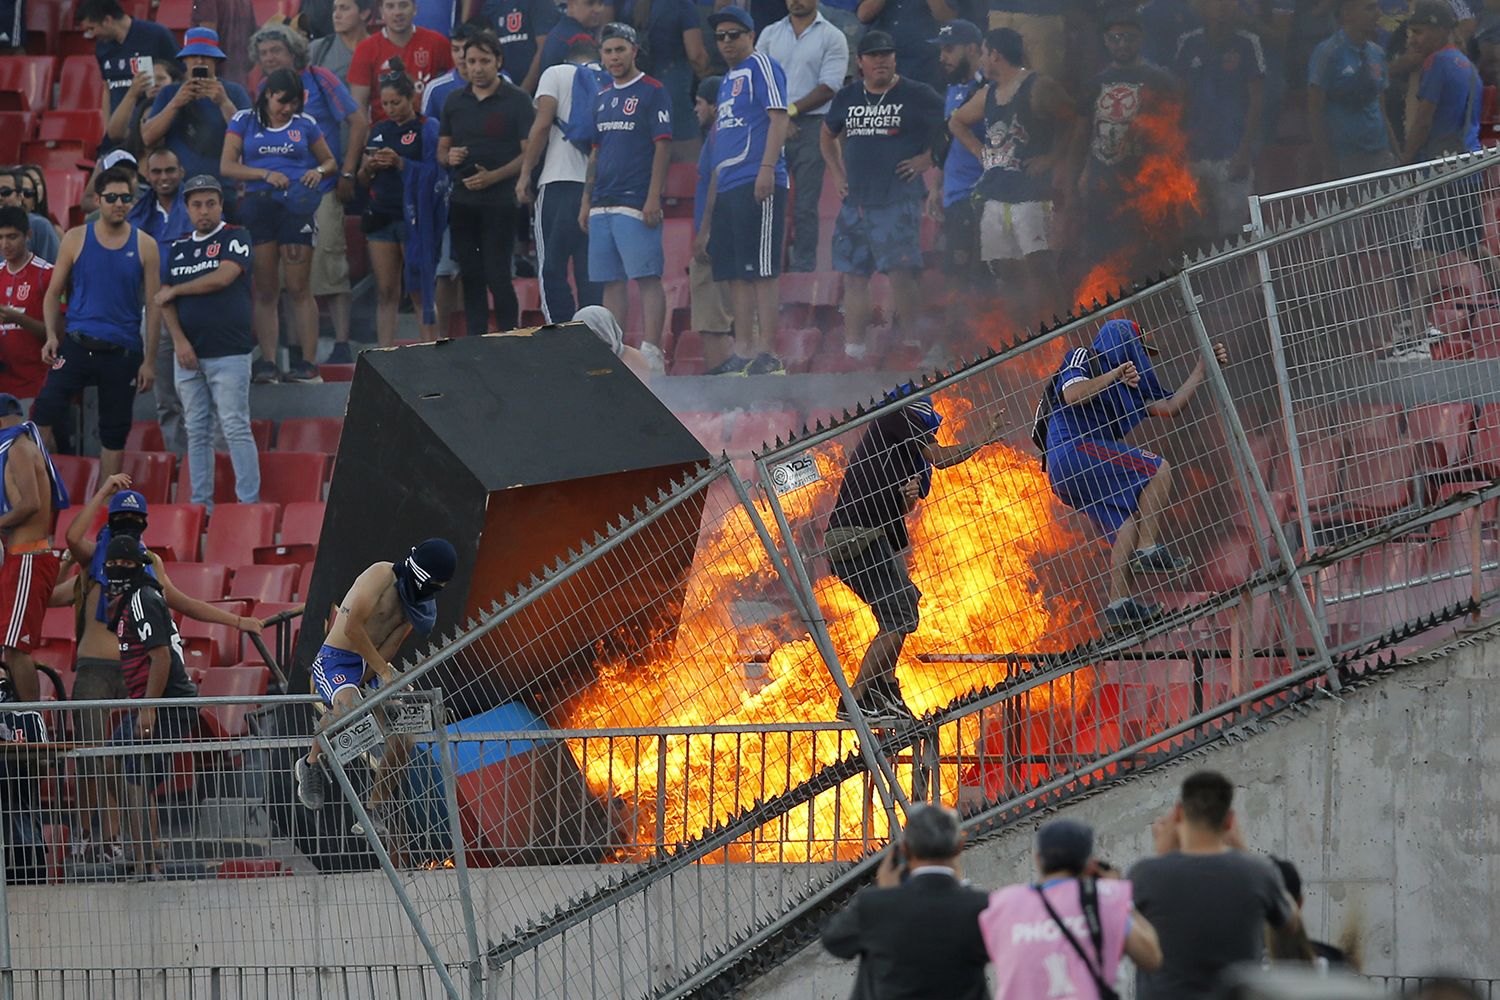 Chile's Universidad de Chile supporters set a fire in the stands during the Copa Libertadores football match against Brazil's Internacional at the National stadium in Santiago on Feb. 4. JAVIER TORRES/AFP via Getty Images